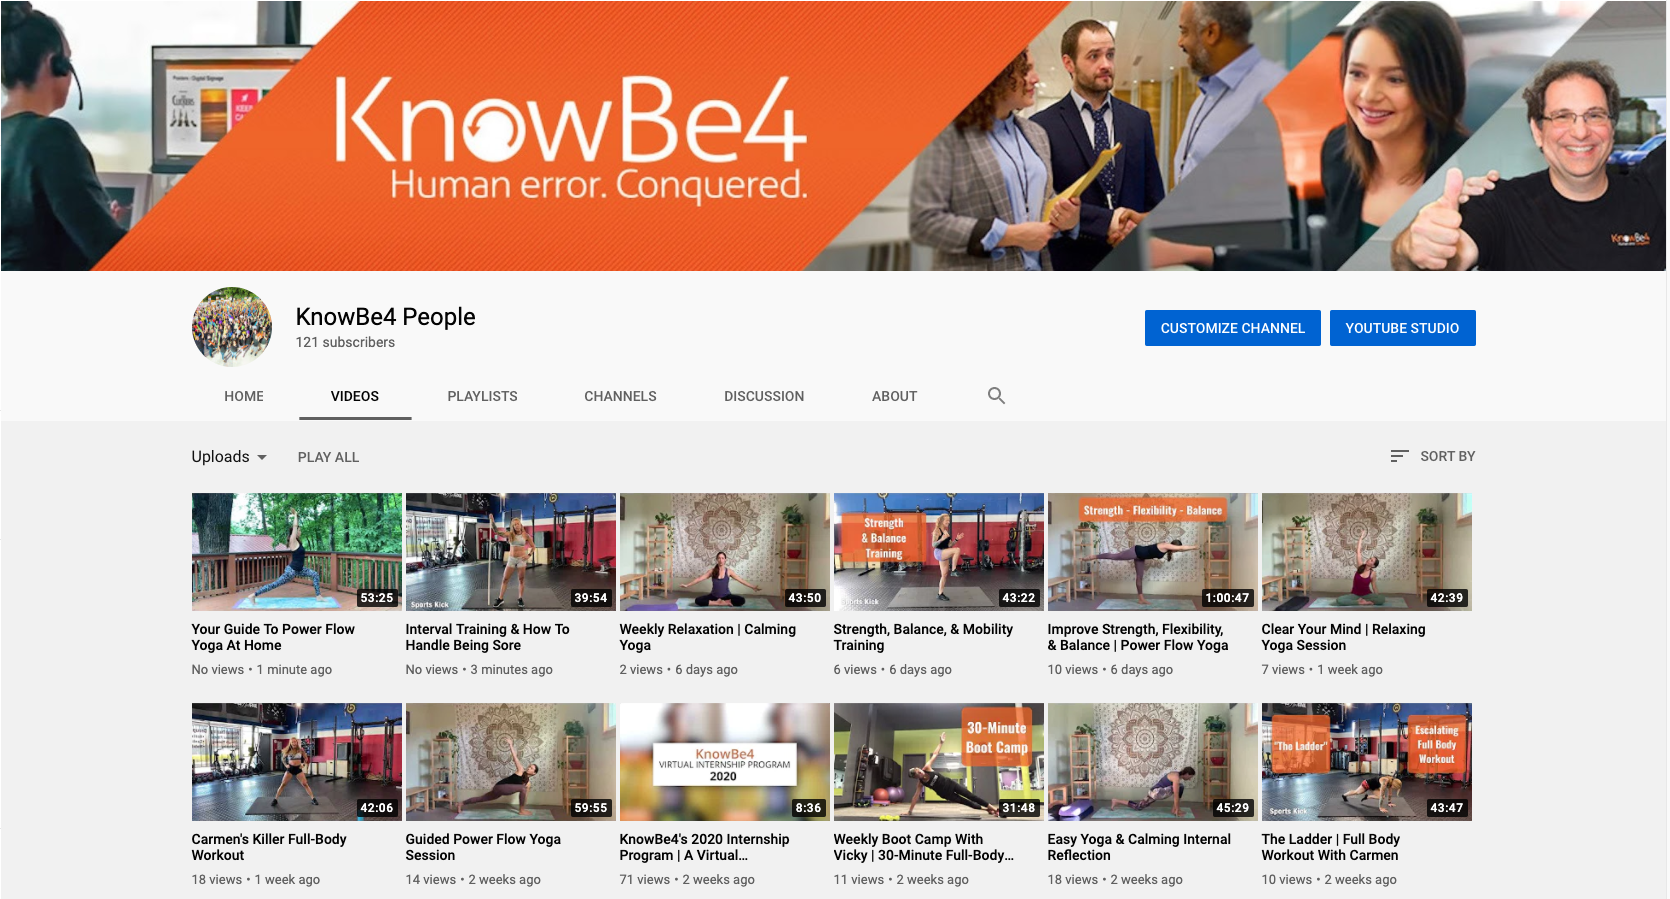 KnowBe4 People YouTube Page